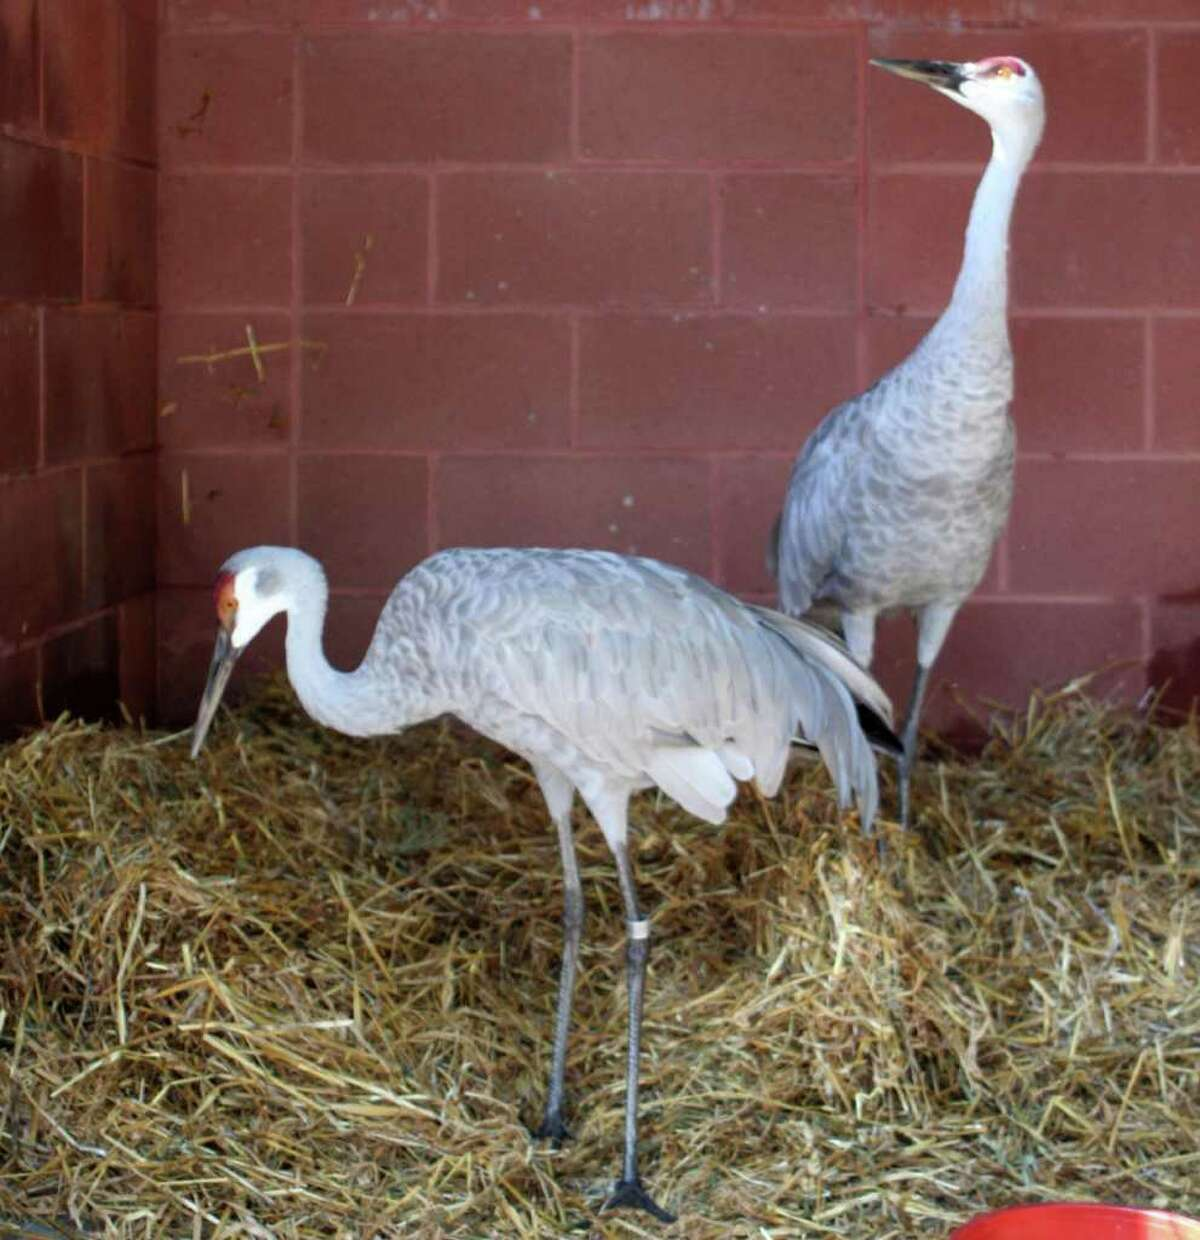 These two sandhill cranes recently made the move from Bay Beach Wildlife Sanctuary in Green Bay, Wis. to Connecticut's Beardsley Zoo in Bridgeport. After some routine medical examinations, the birds should be on display at the zoo within the next few weeks.